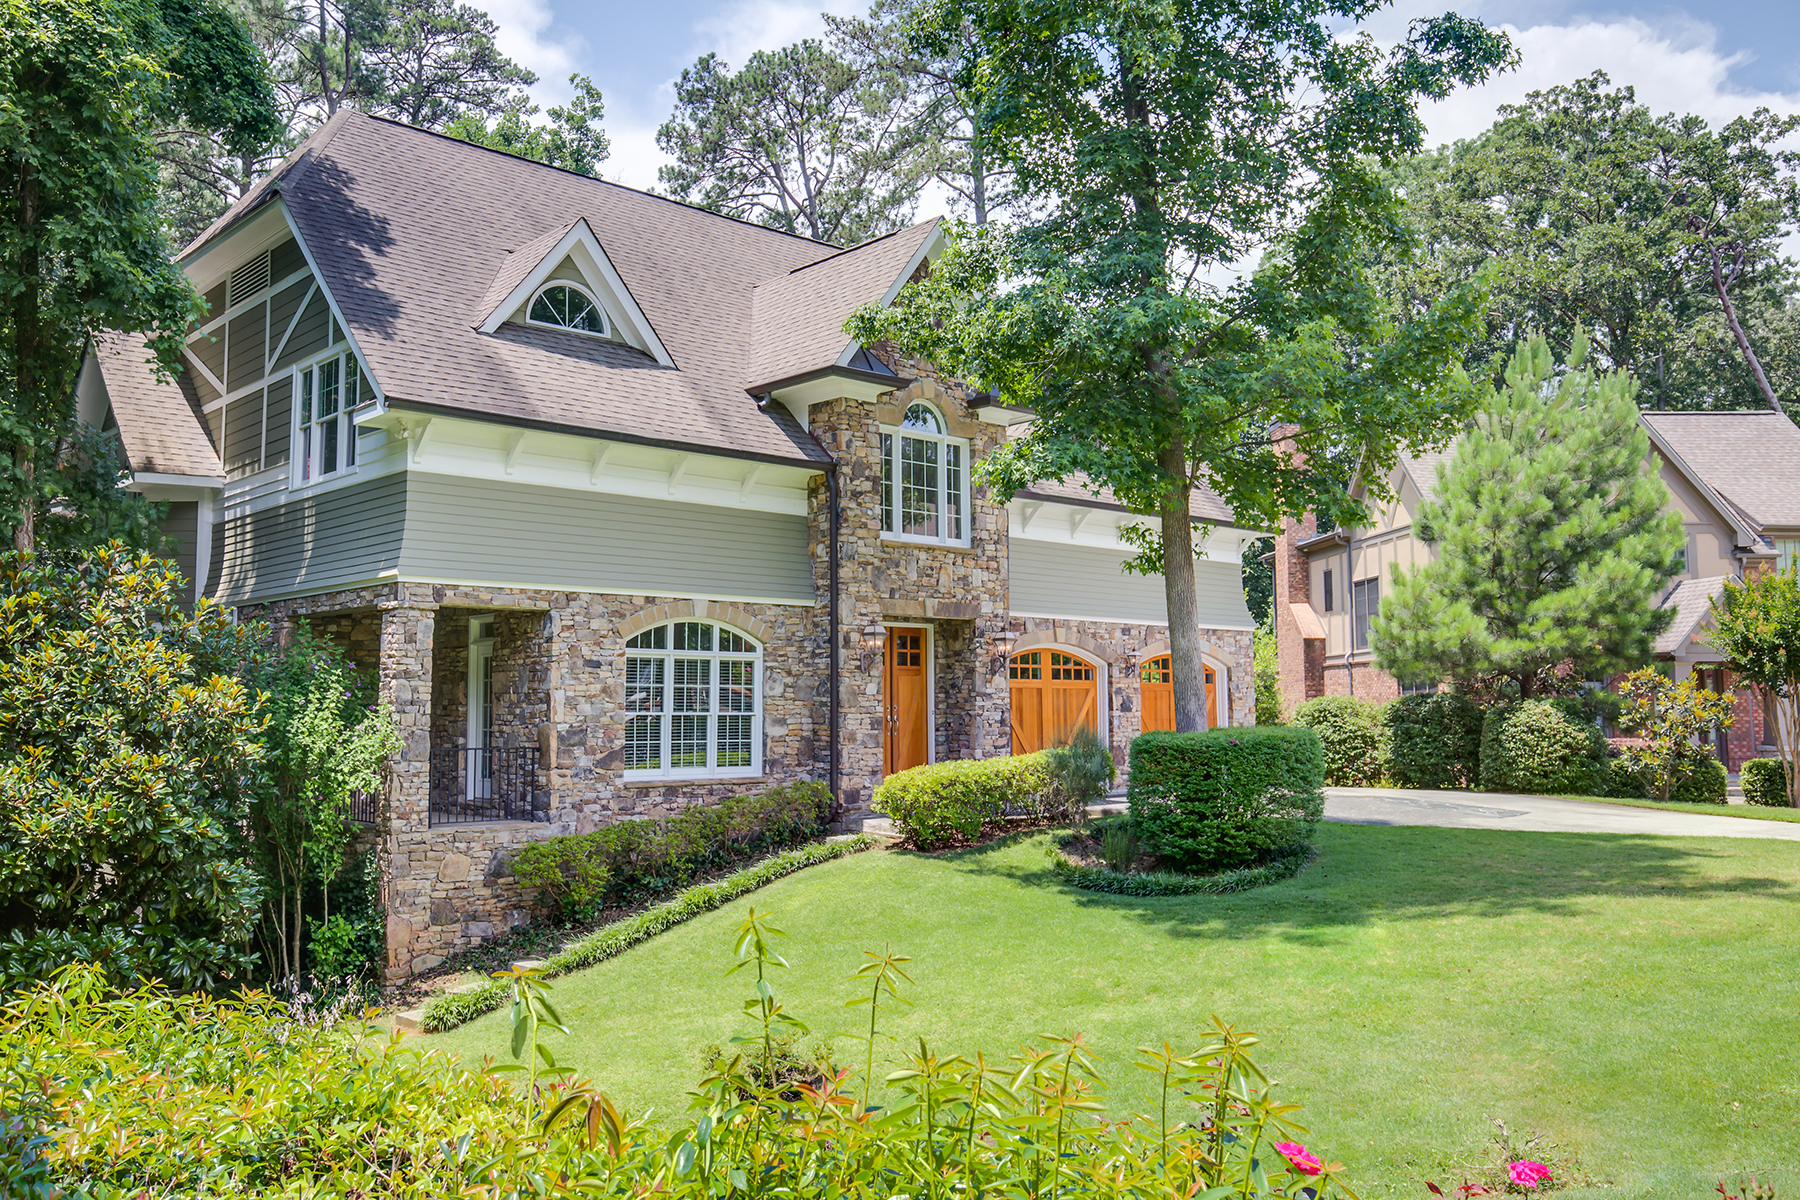 一戸建て のために 売買 アット Immense Screened Porch Overlooks Park-Like Private Yard on A Quiet Cul-de-Sac 500 S Westminster Way NE Atlanta, ジョージア 30307 アメリカ合衆国